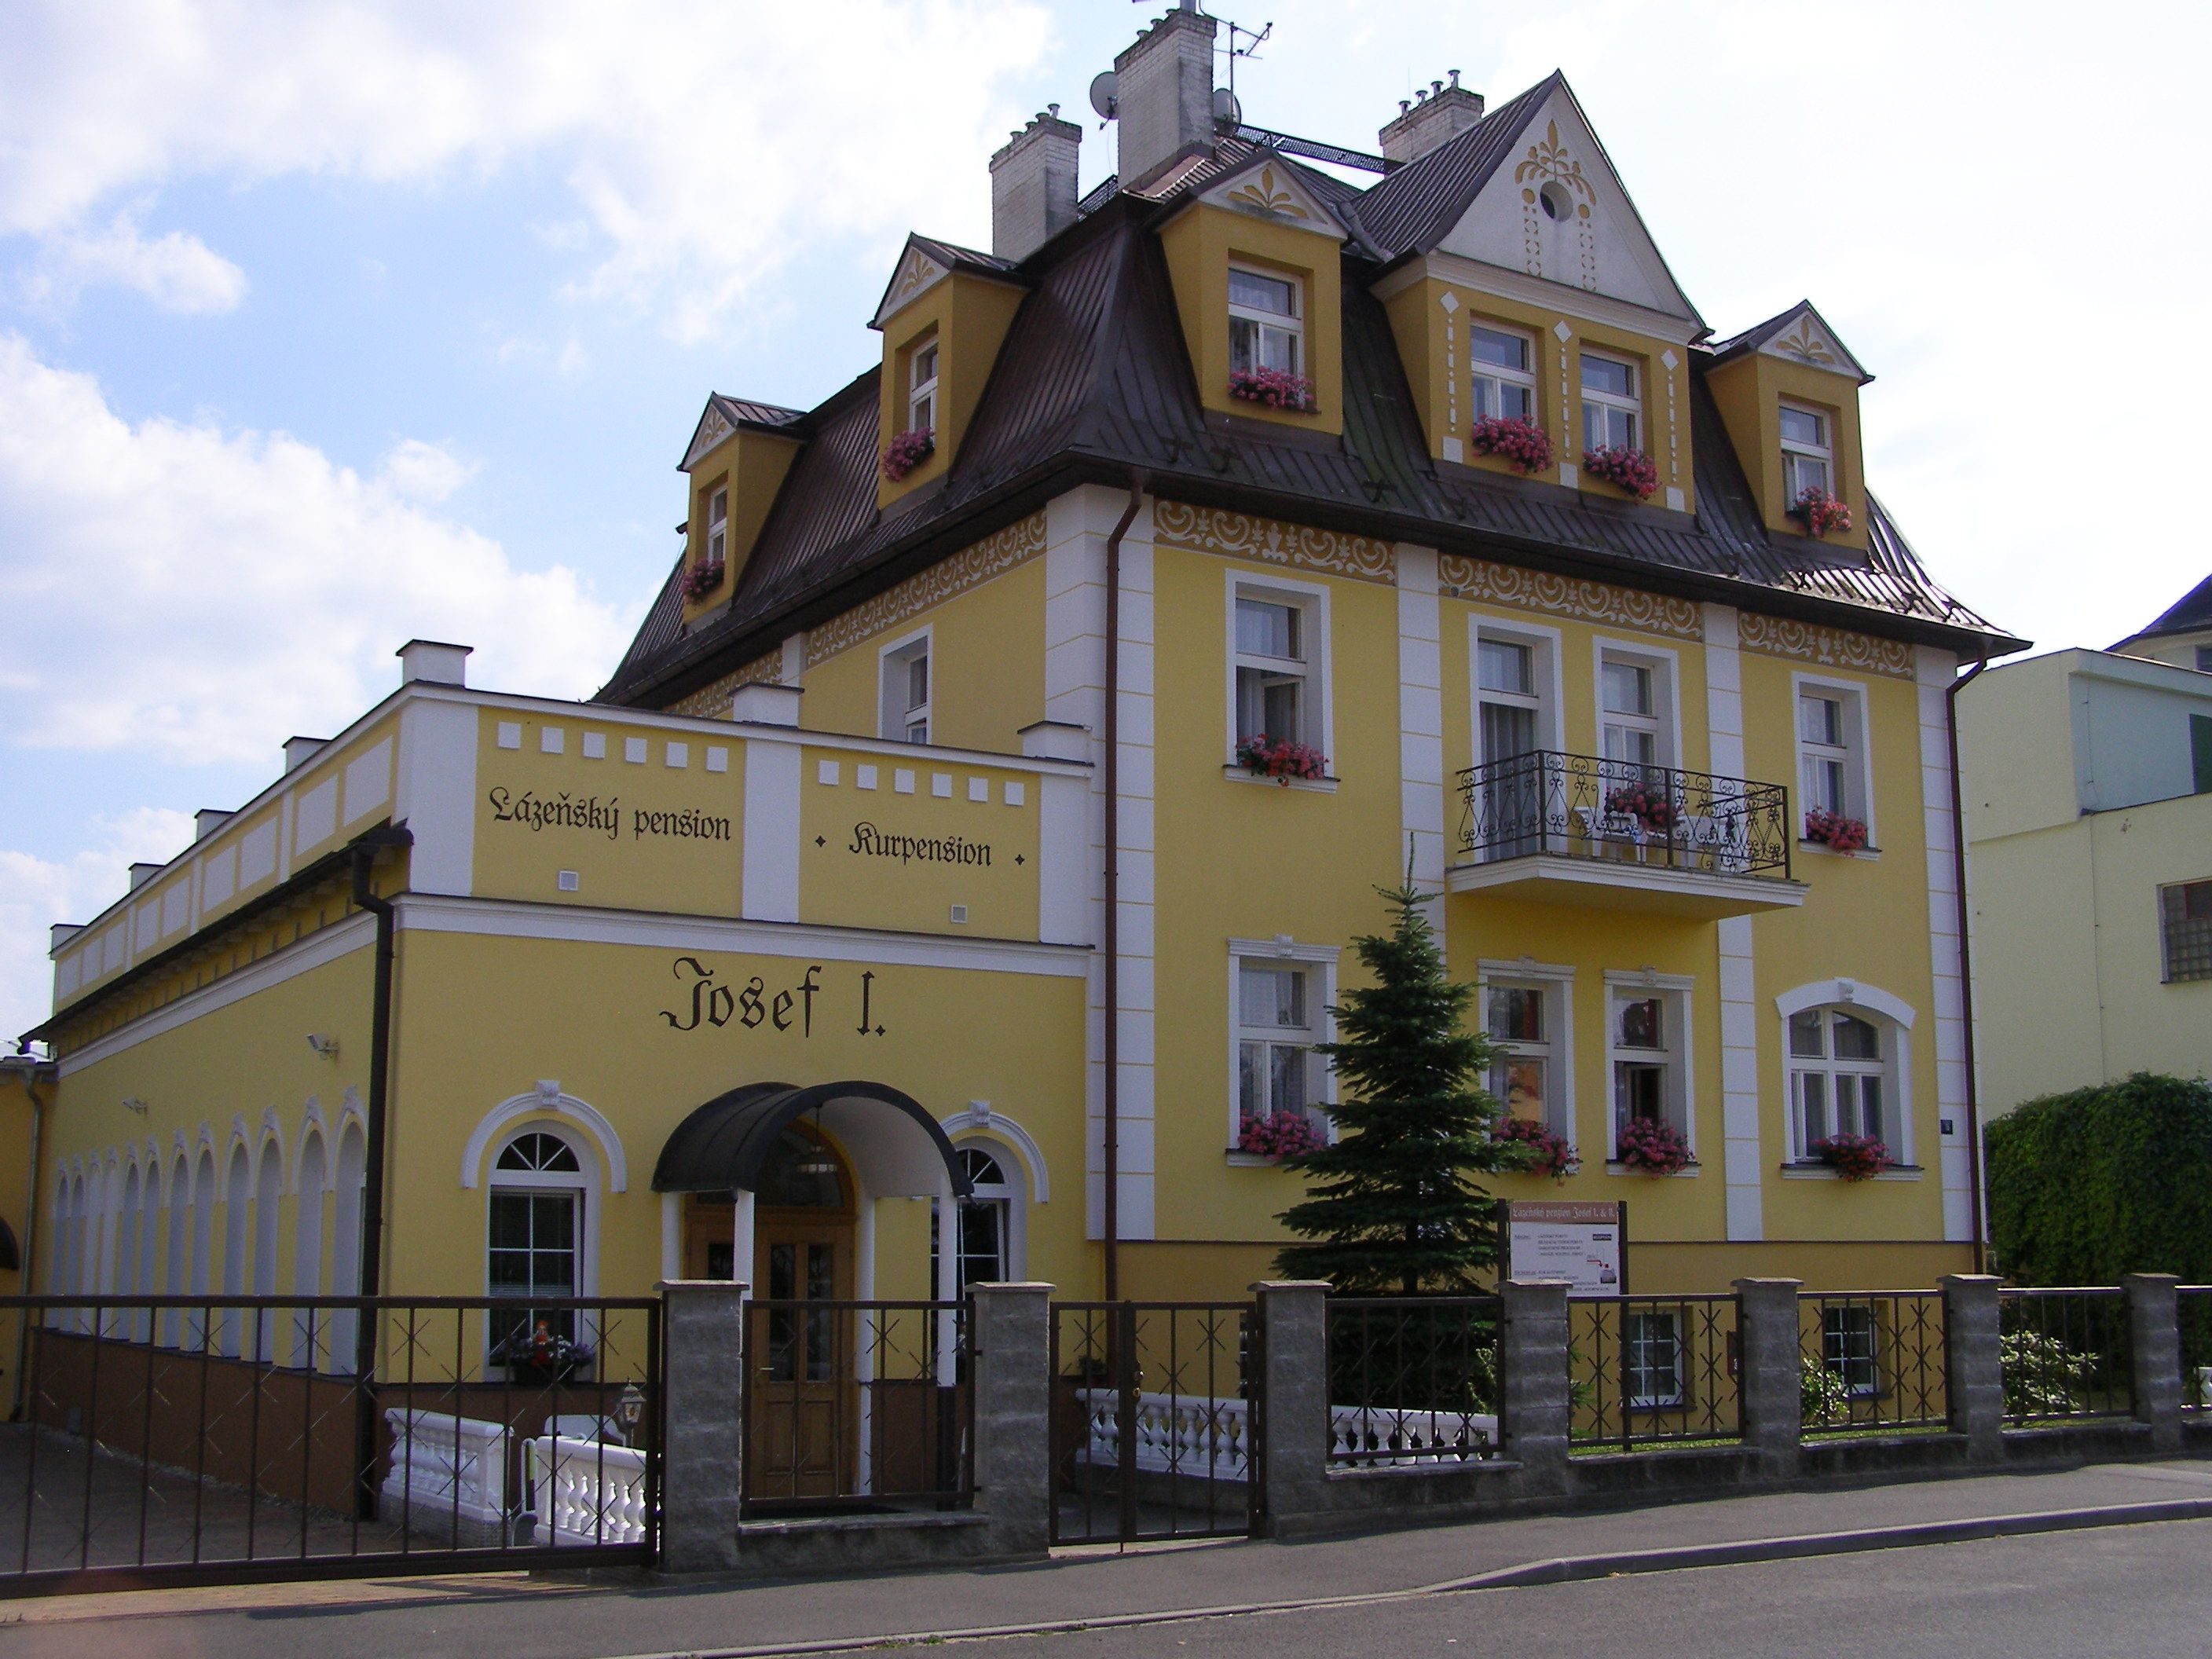 Pension Josef, Josef I.